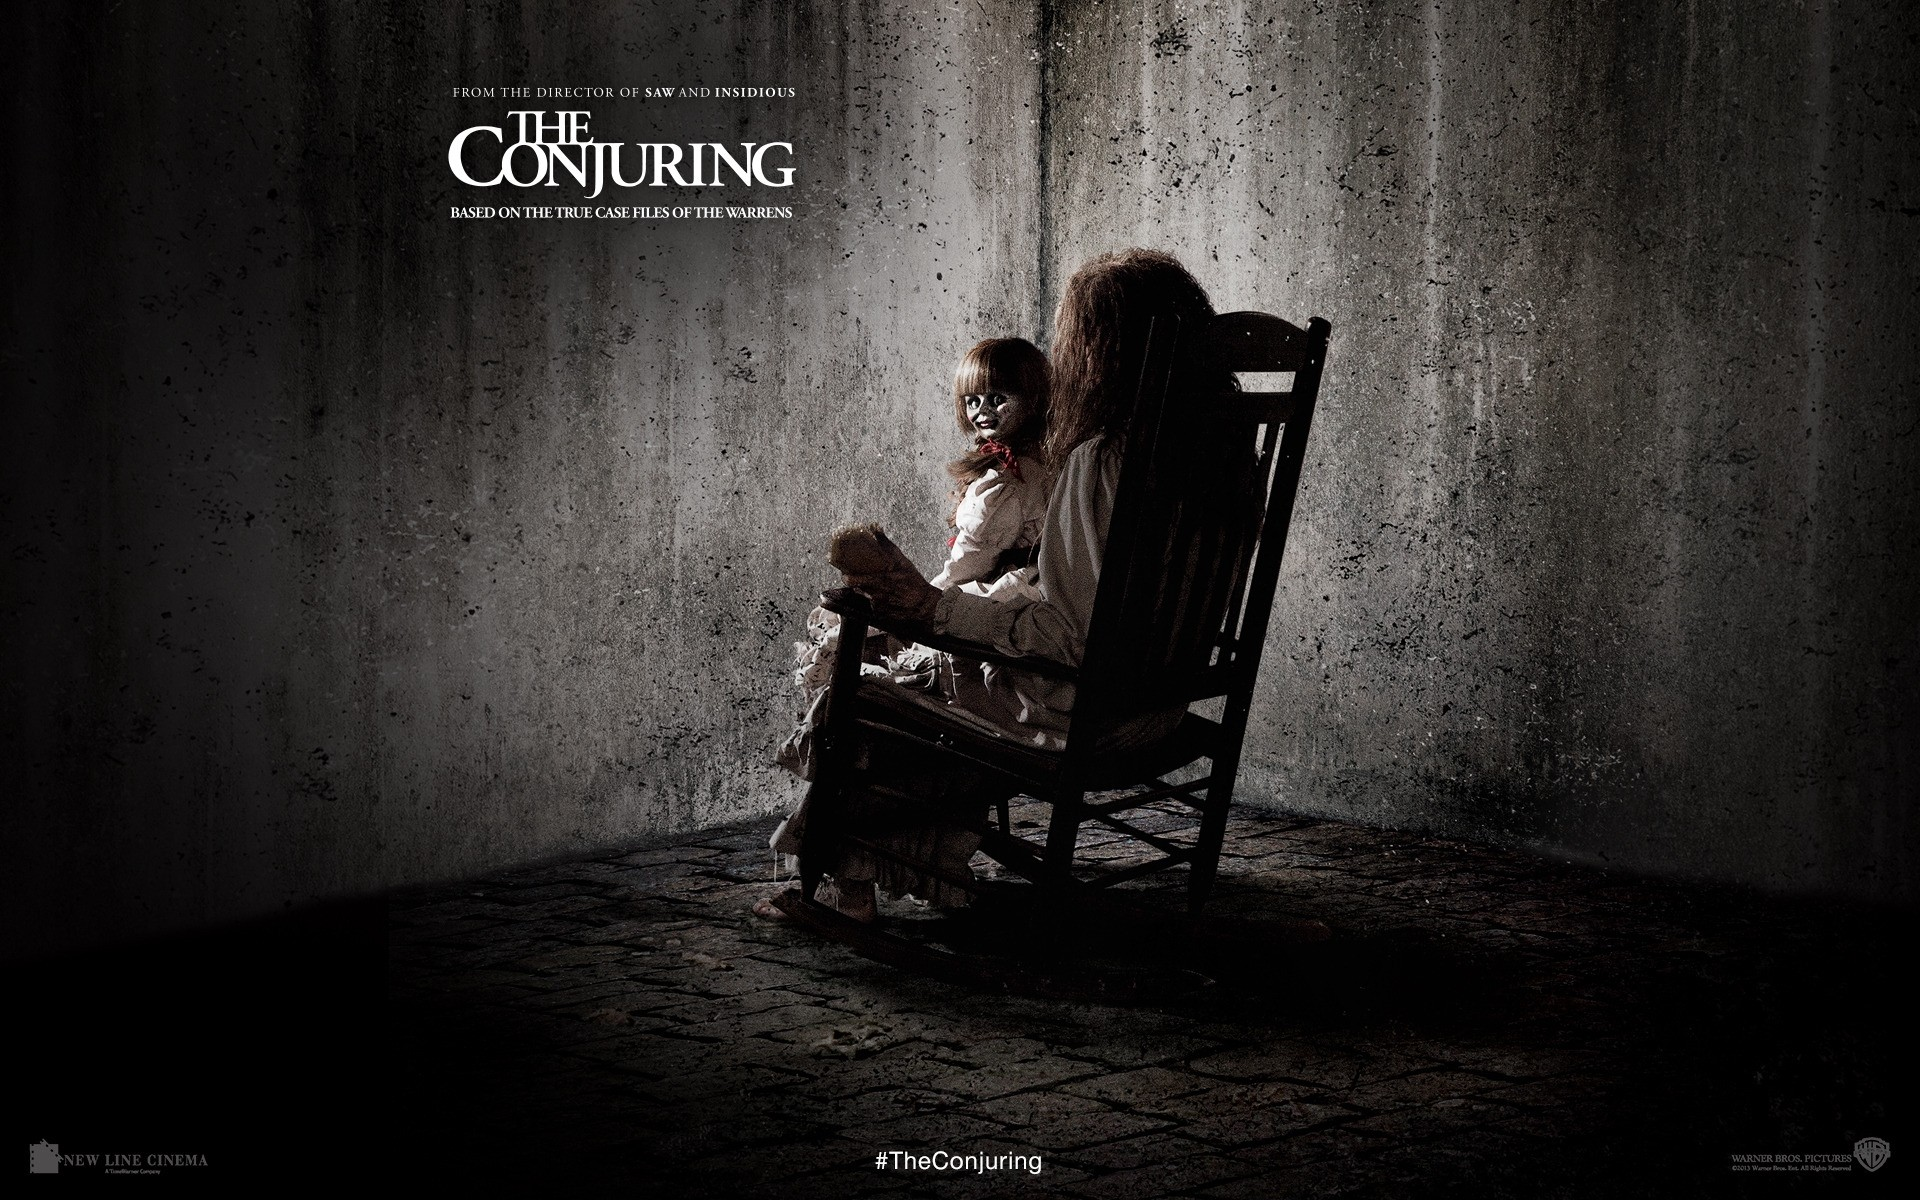 The Conjuring Movie Android Wallpapers For Free